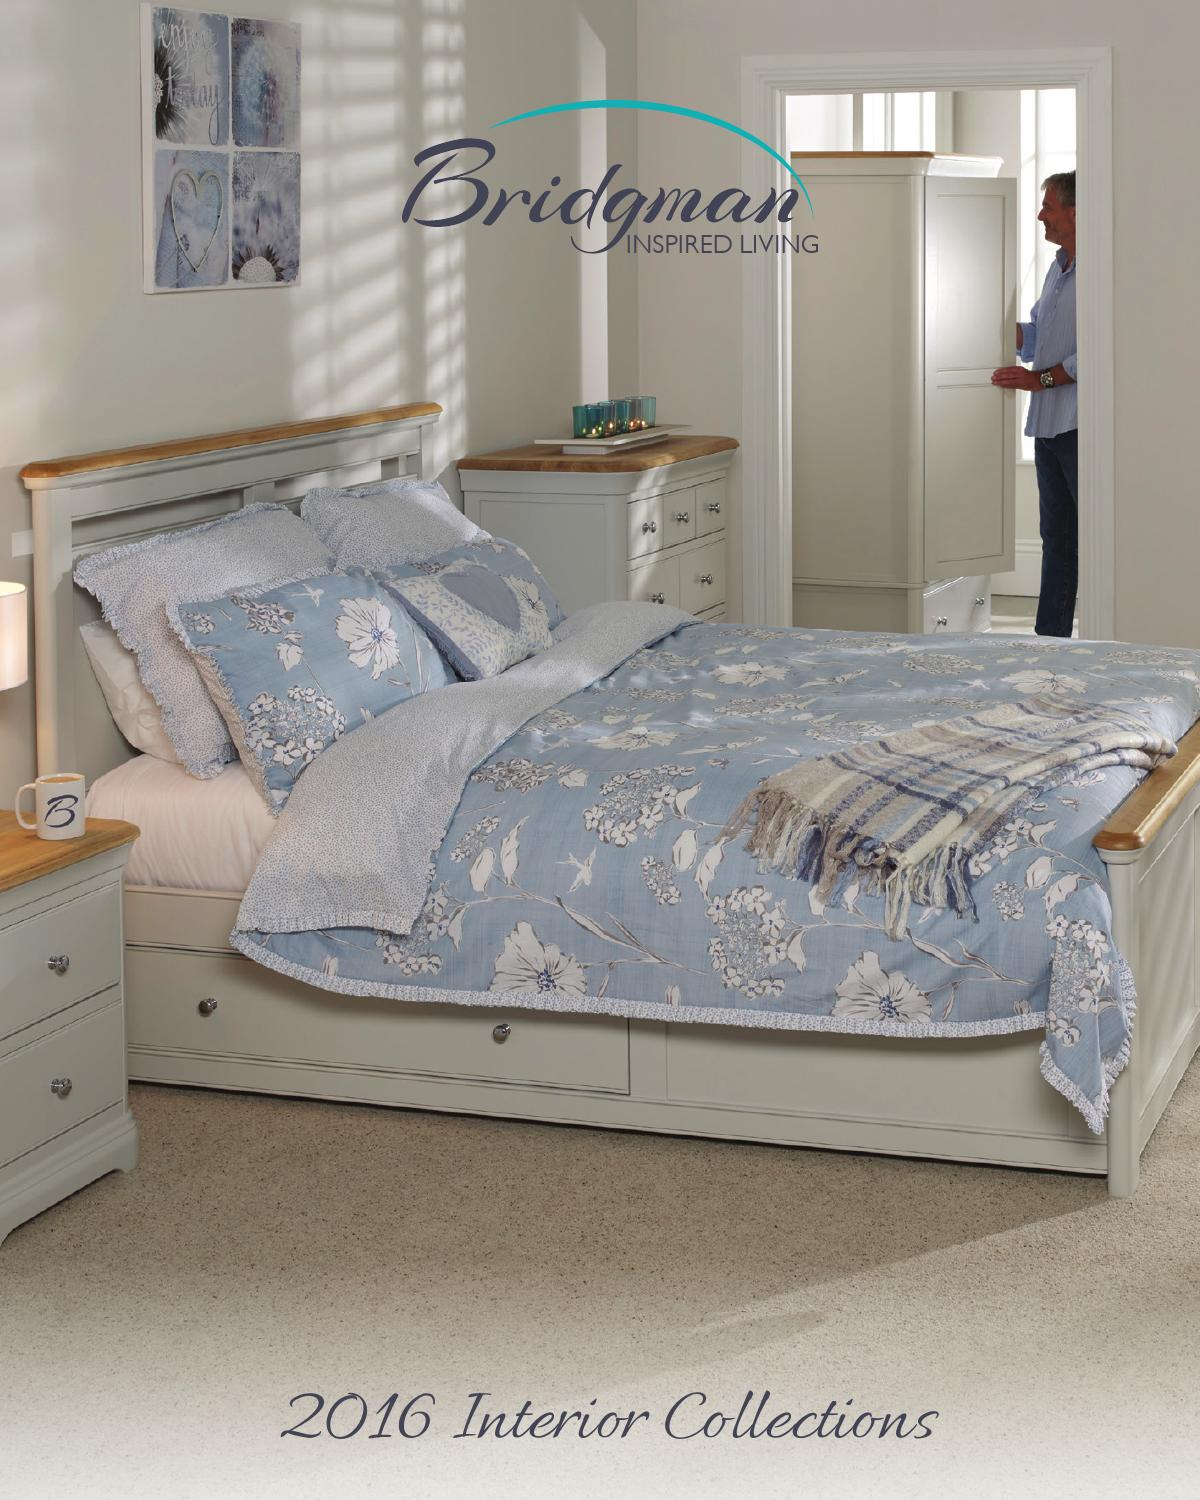 Bridgman 2016 Interior Collections By Bridgman Issuu